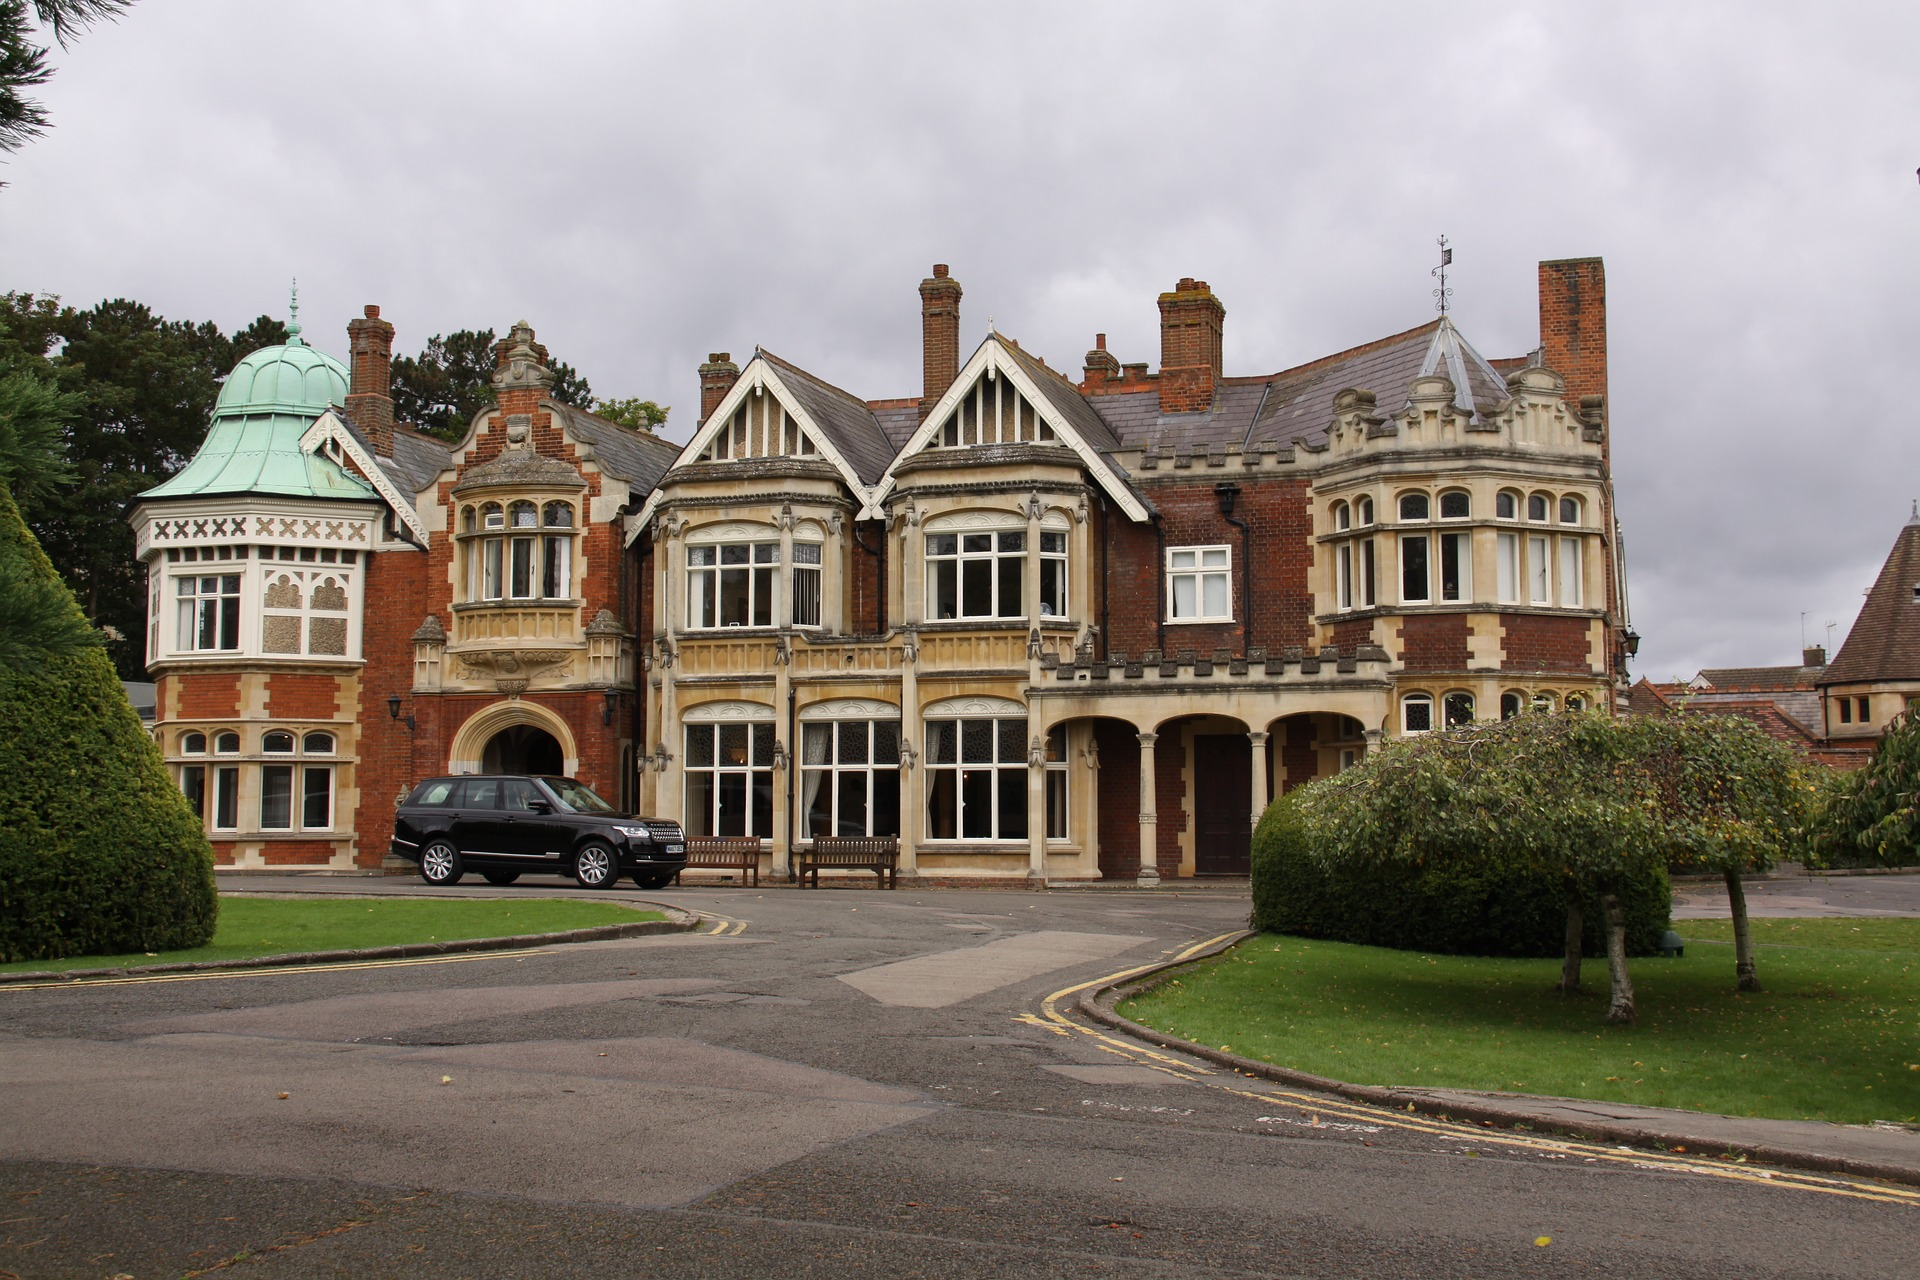 Exterior of Bletchley Park